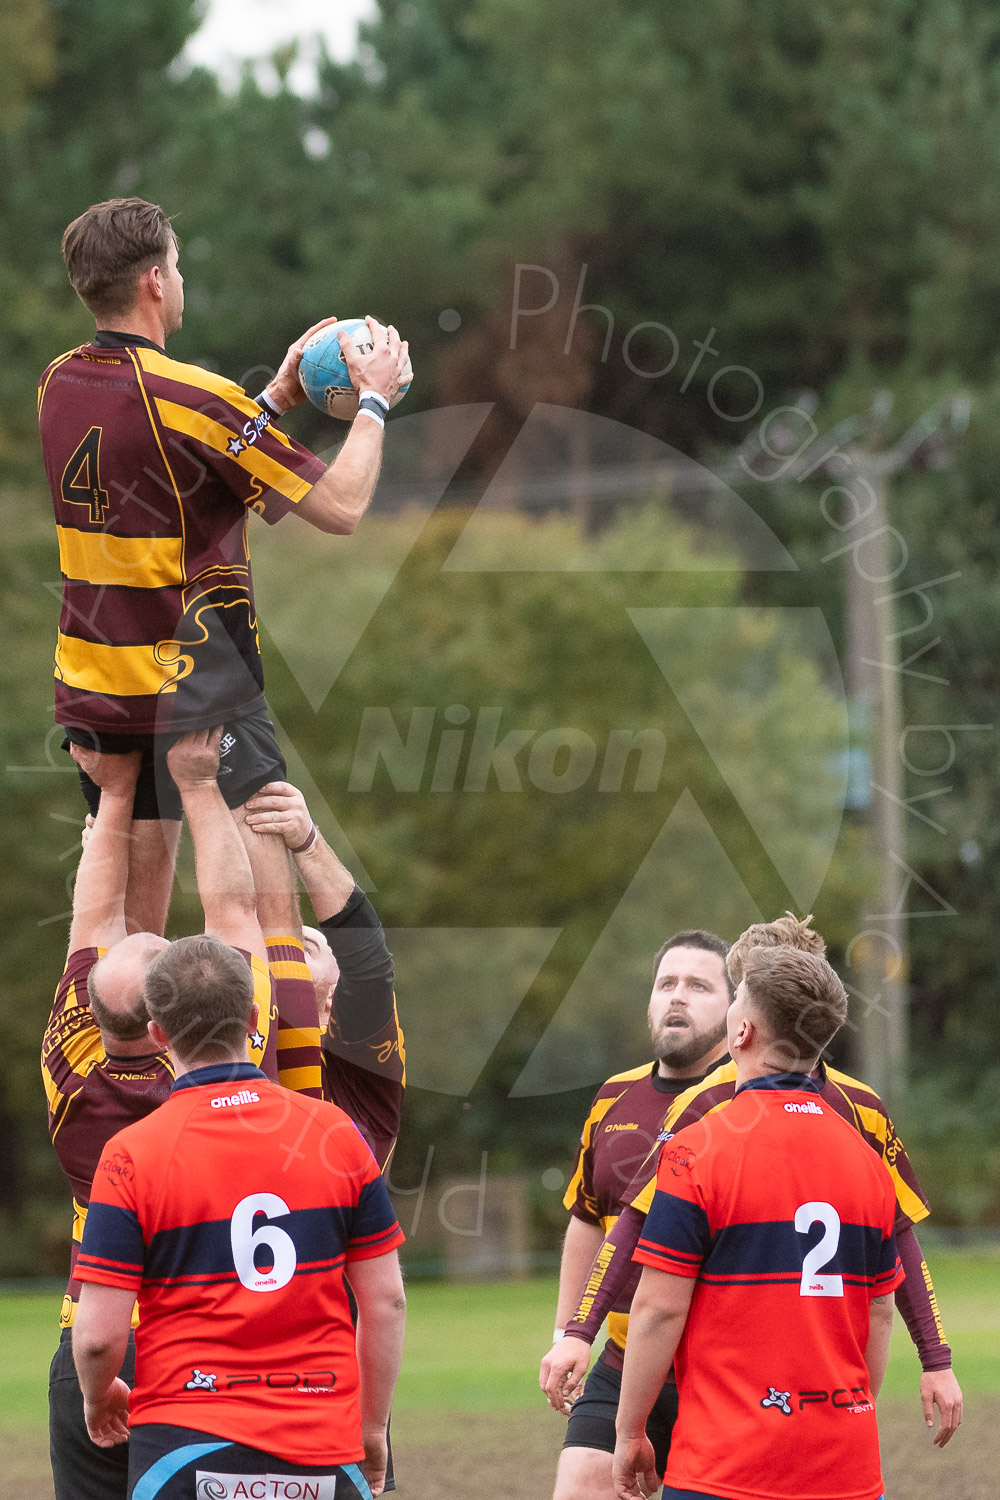 20181027 Amp Extras vs St Neots 2nd XV #2255